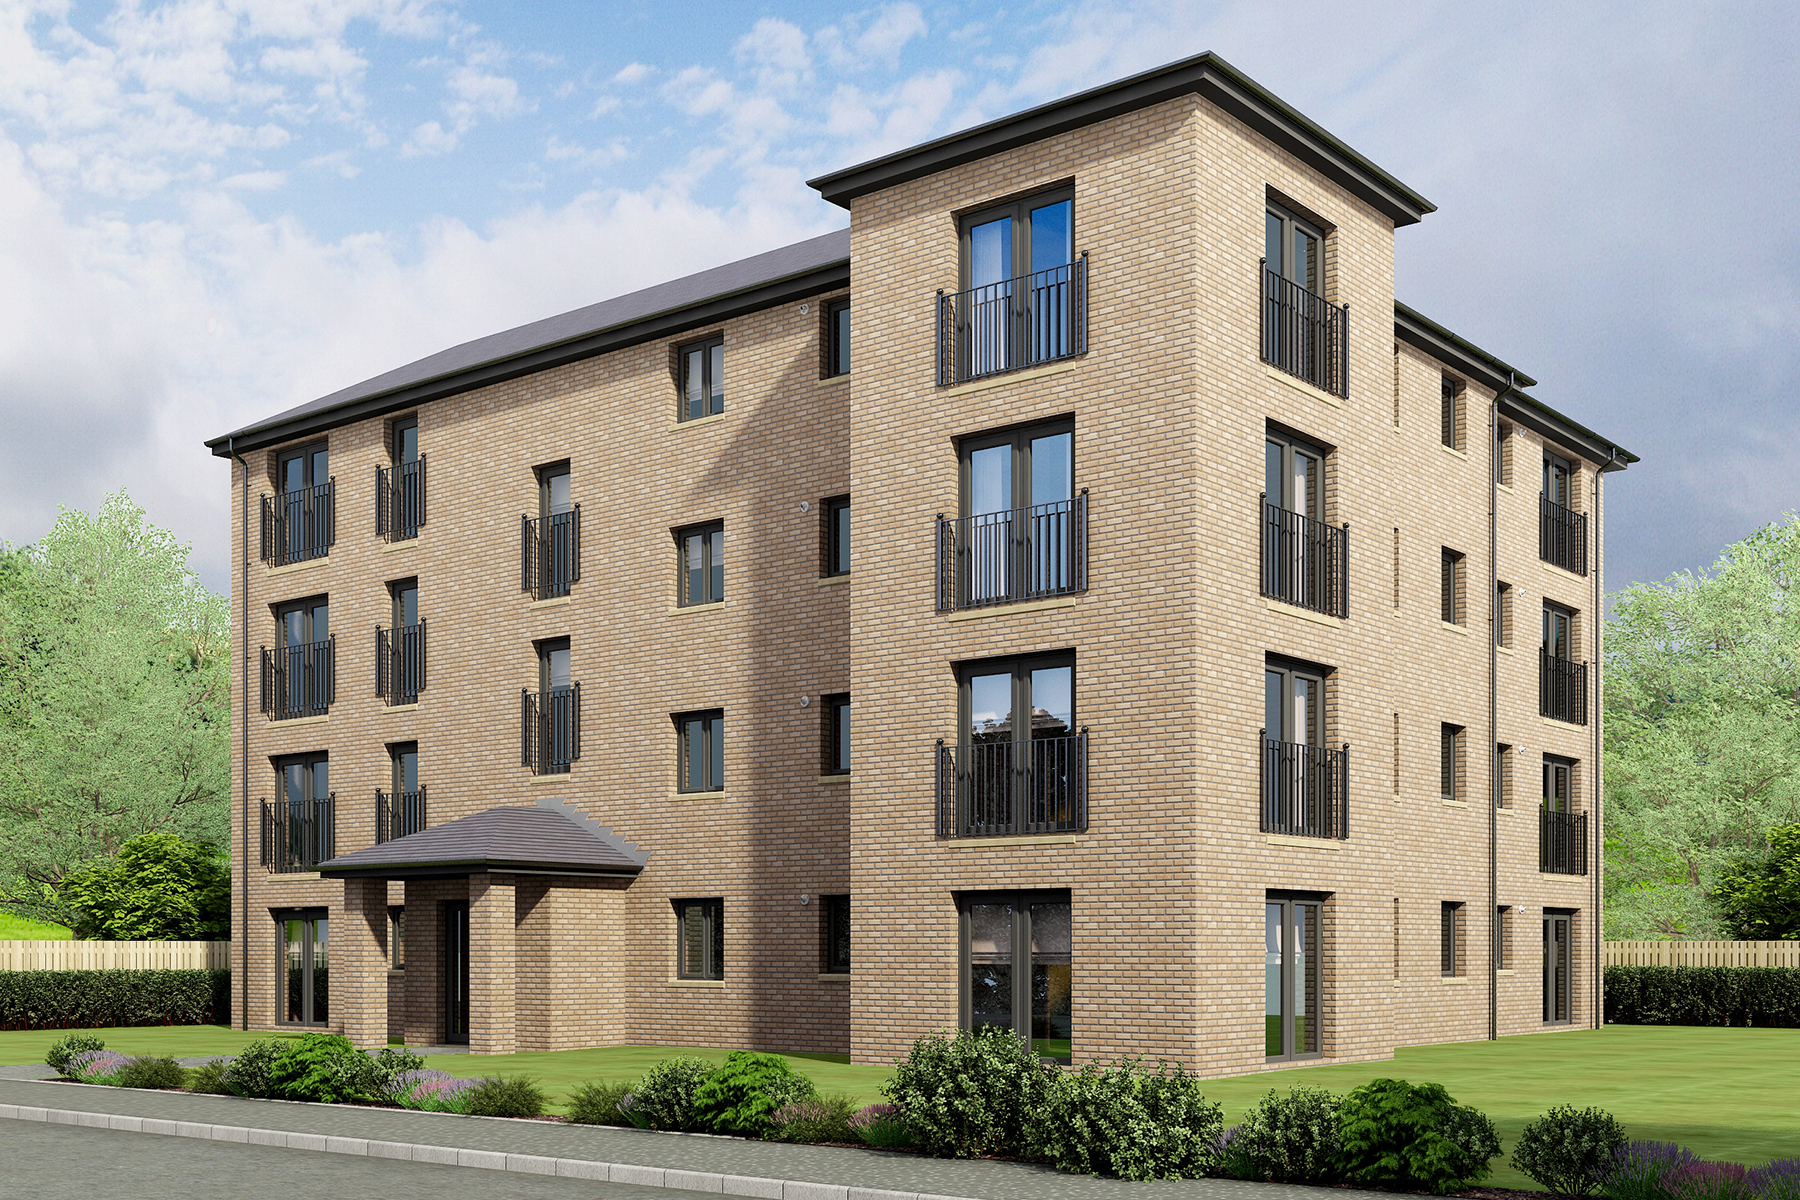 Bankfield Brae Apartments